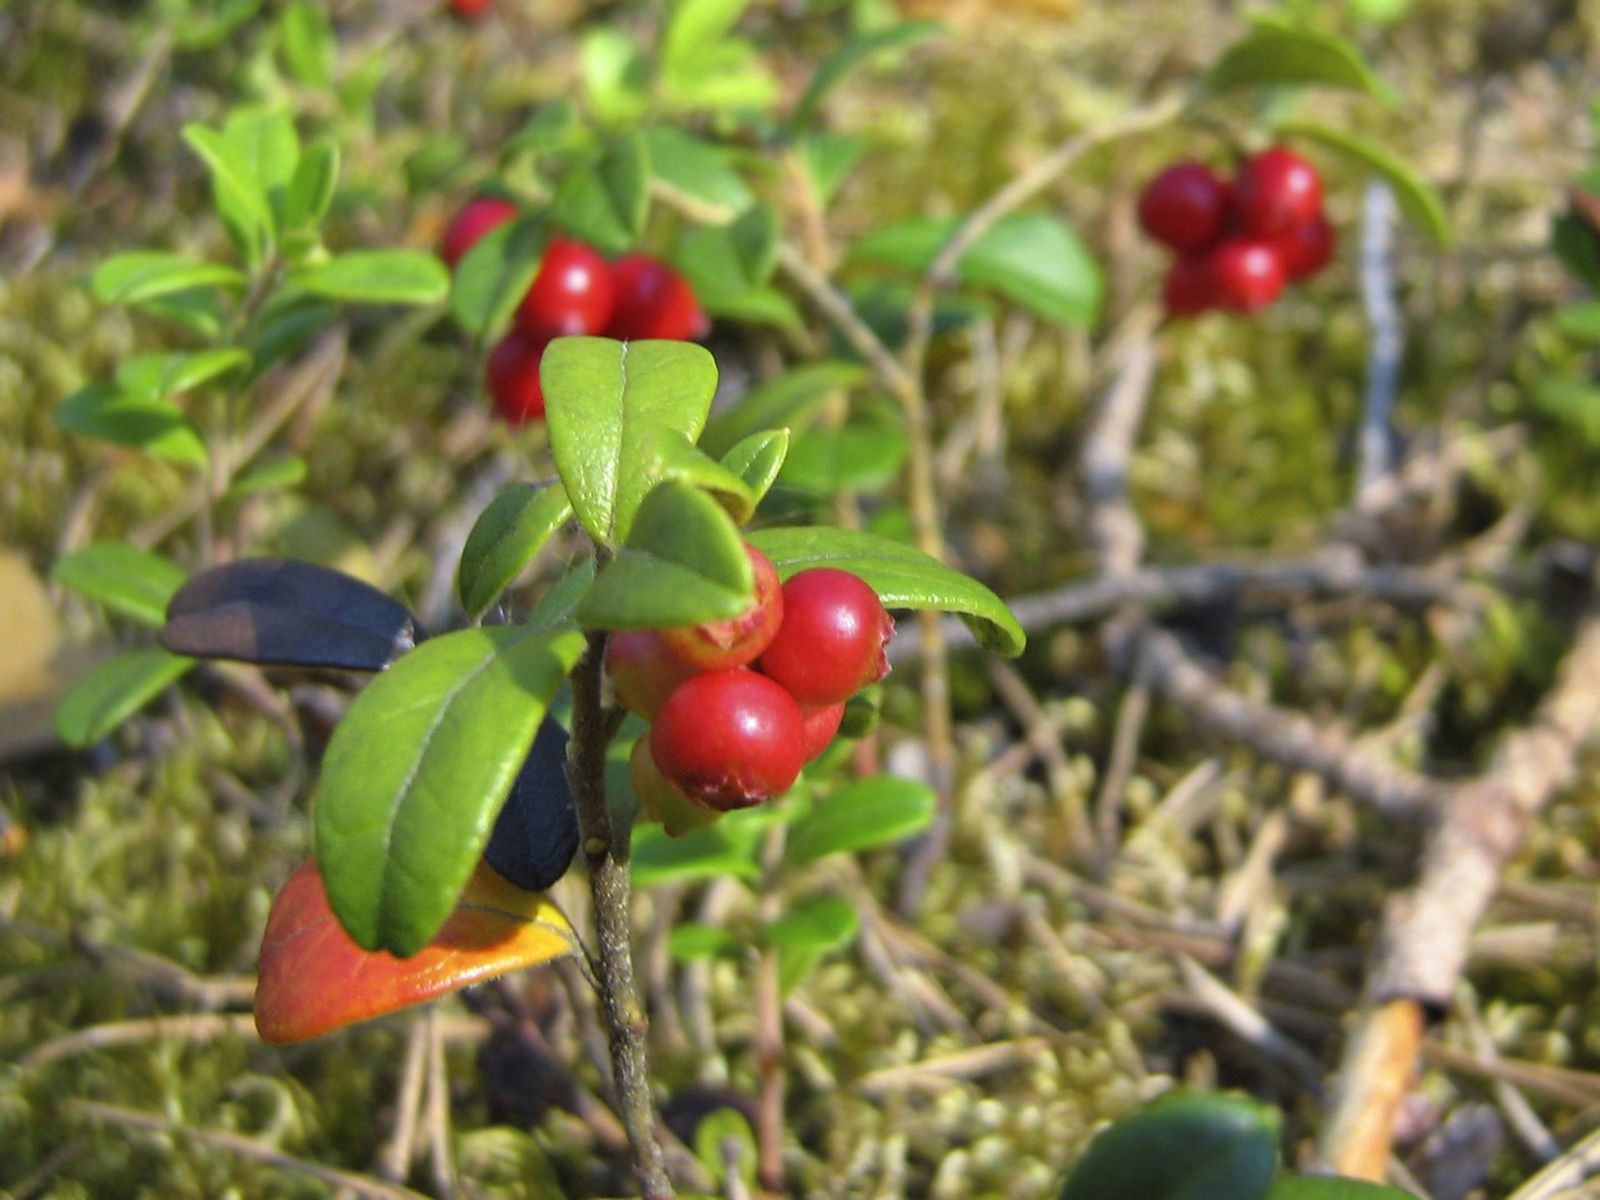 130367 download wallpaper Food, Grass, Ripe, Berries screensavers and pictures for free